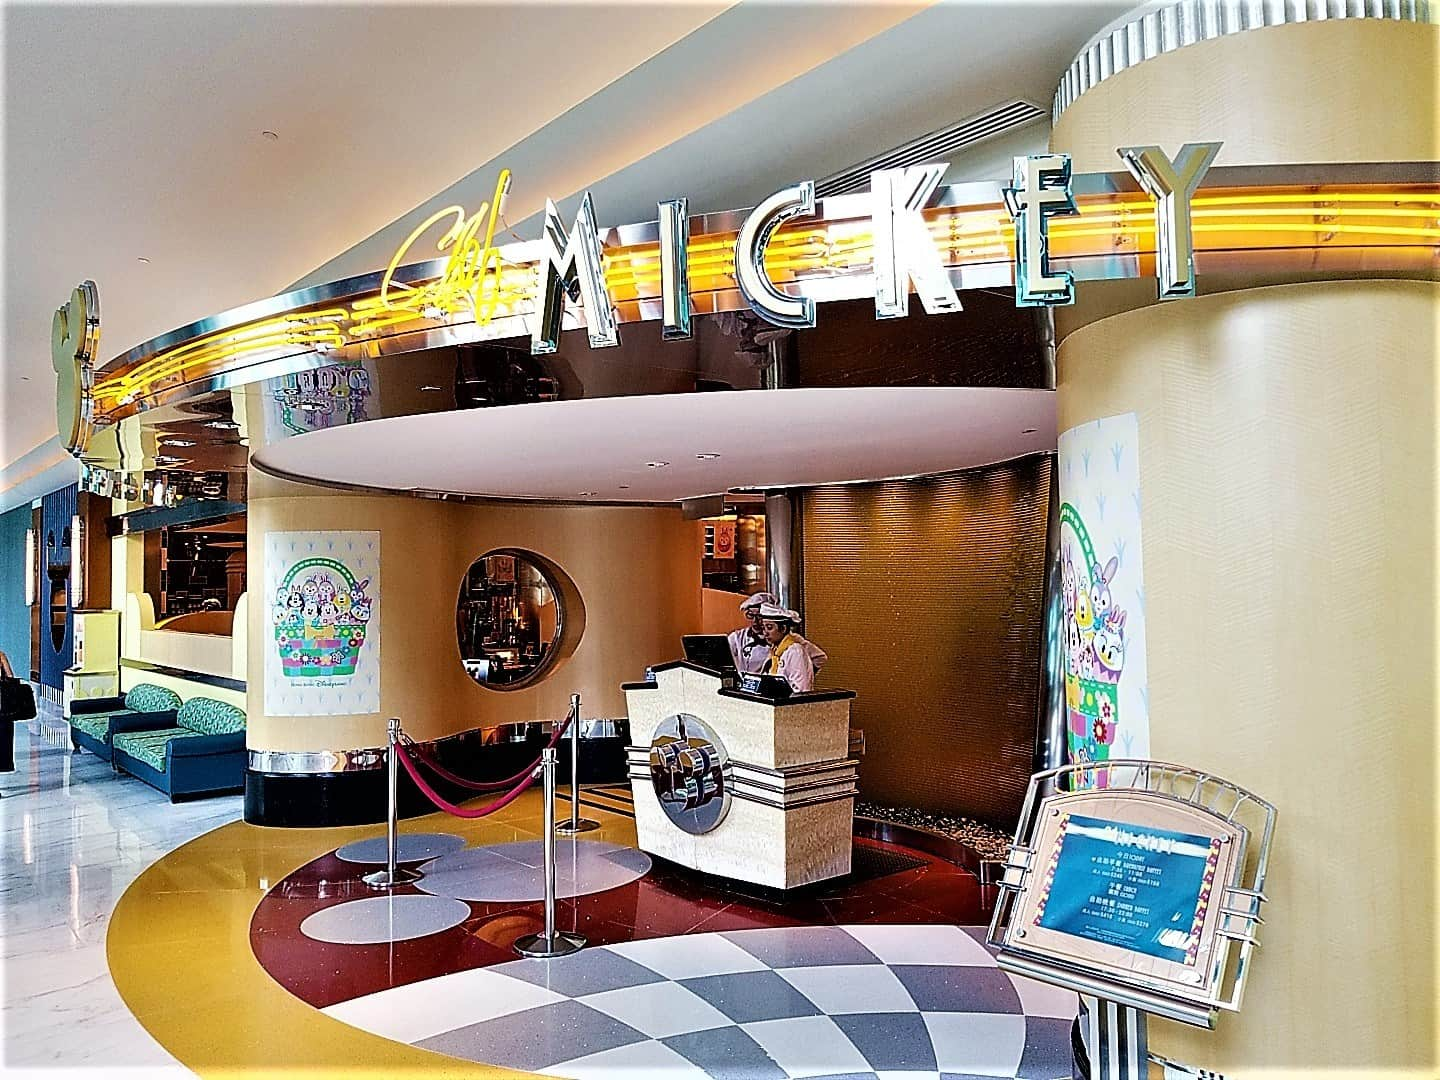 image-of-chef-mickey-restaurant-at-disneys-hollywood-hotel-in-hong-kong-entrance